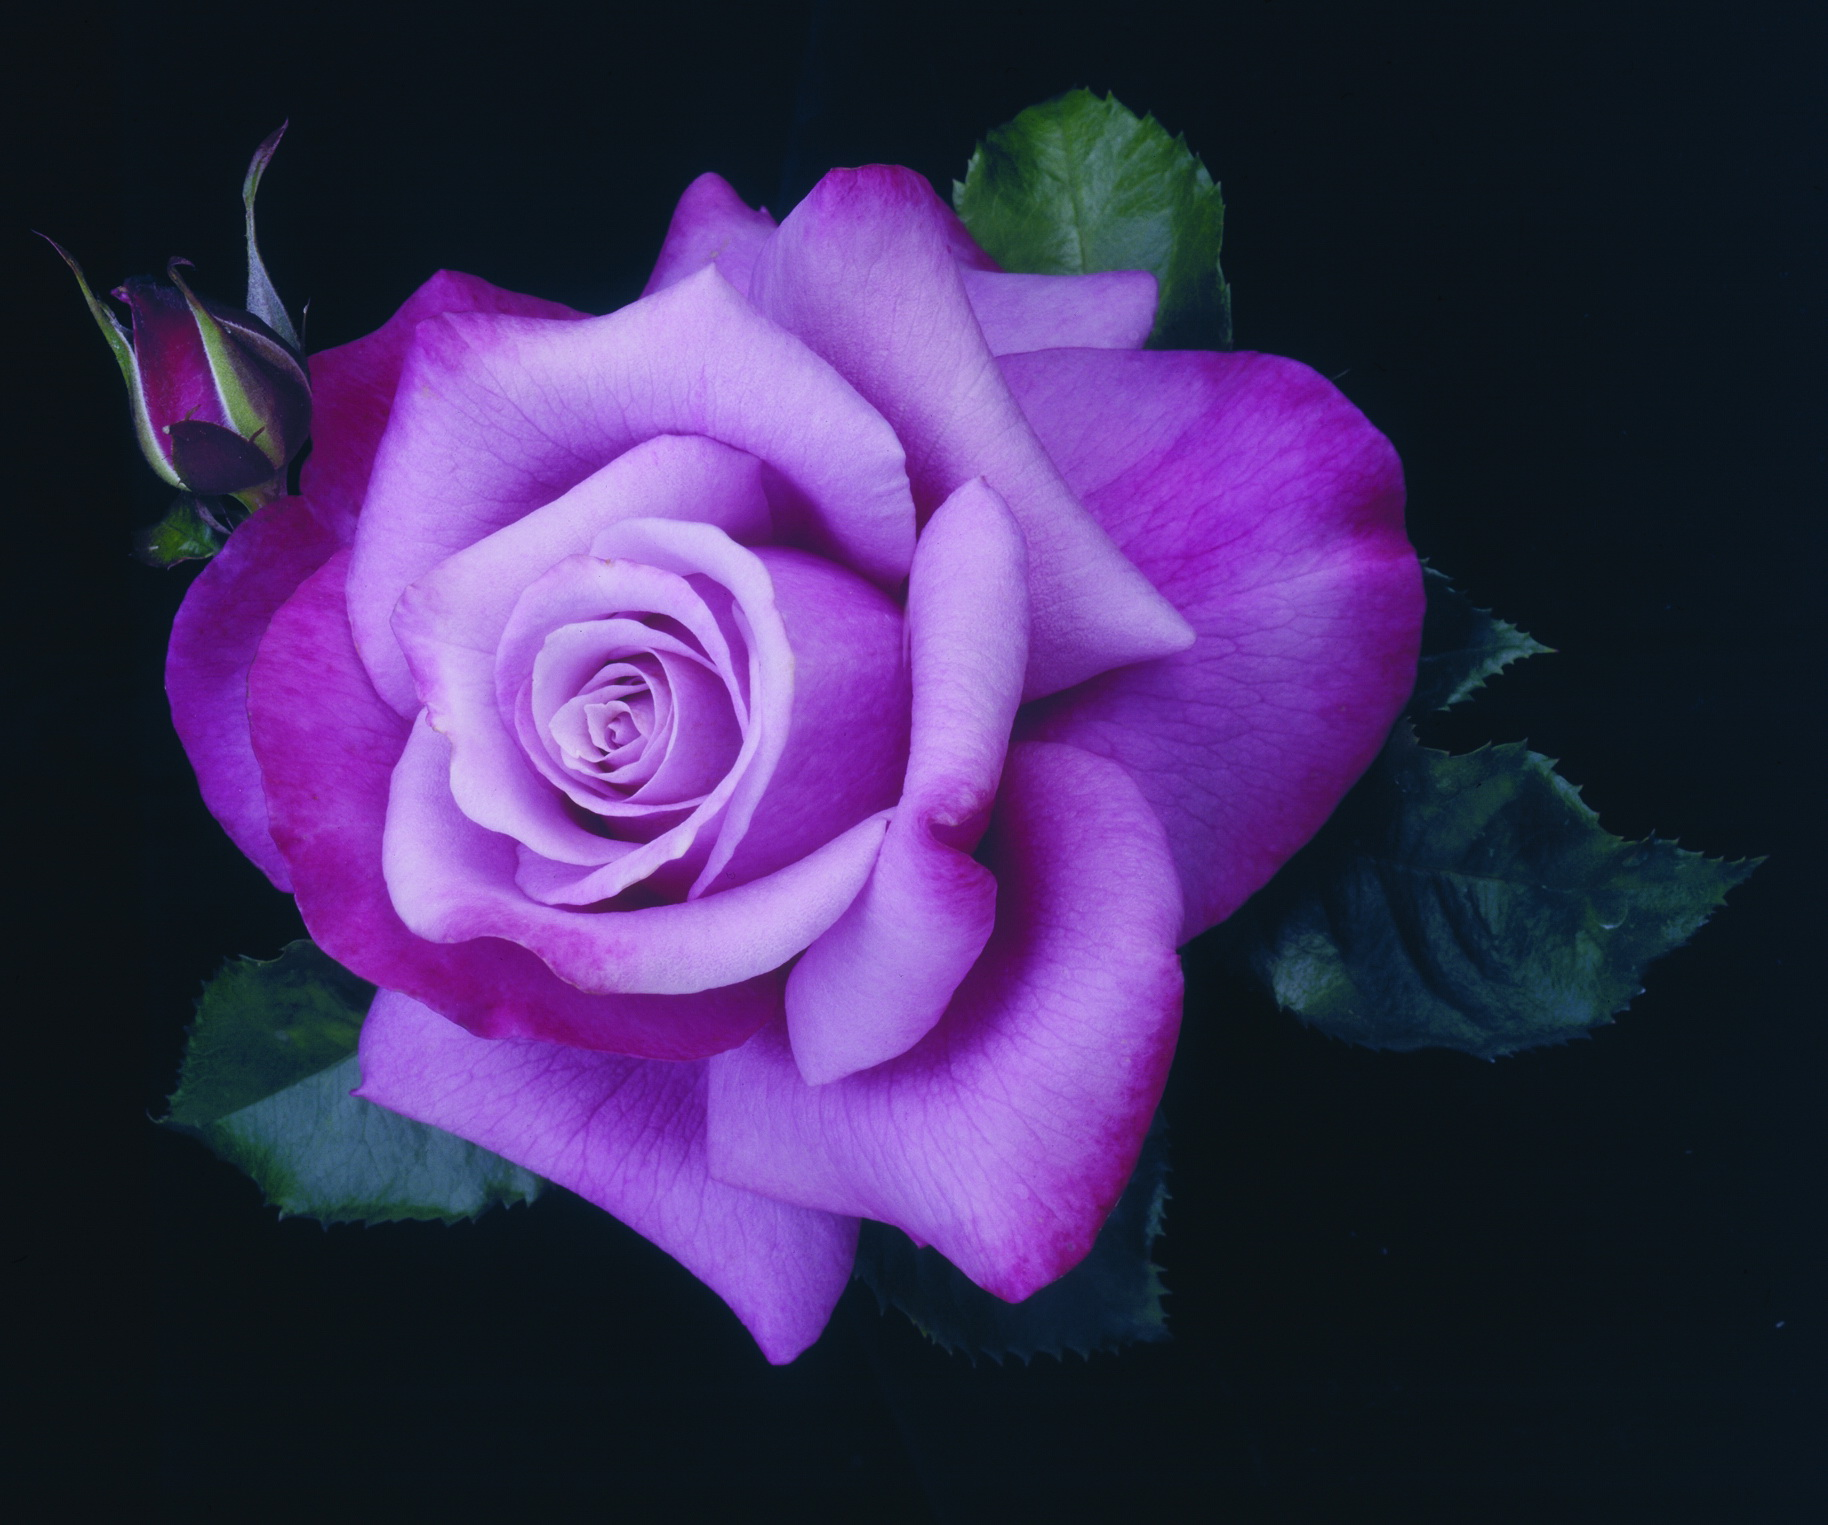 Purple Roses Background Images: Index Of /image/GPlus/Purple Rose